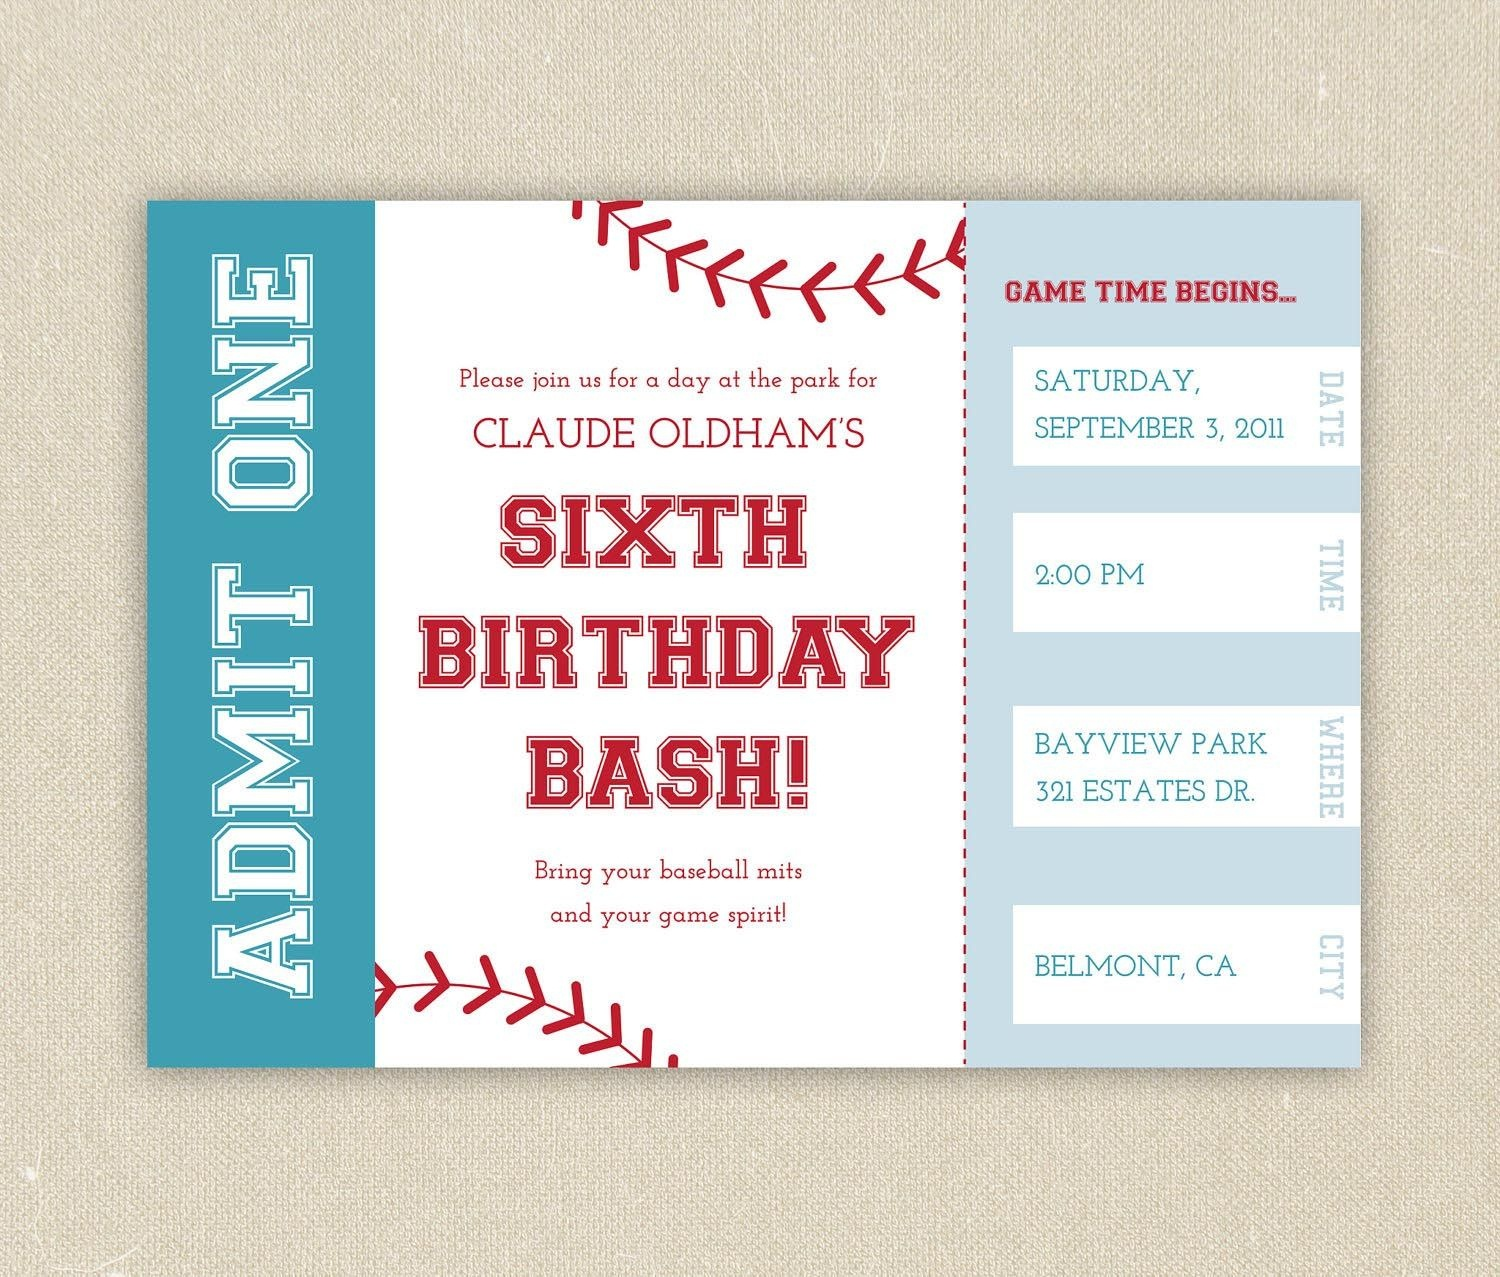 Free Printable Baseball Birthday Party Invitations | Birthday Party - Free Printable Baseball Ticket Birthday Invitations